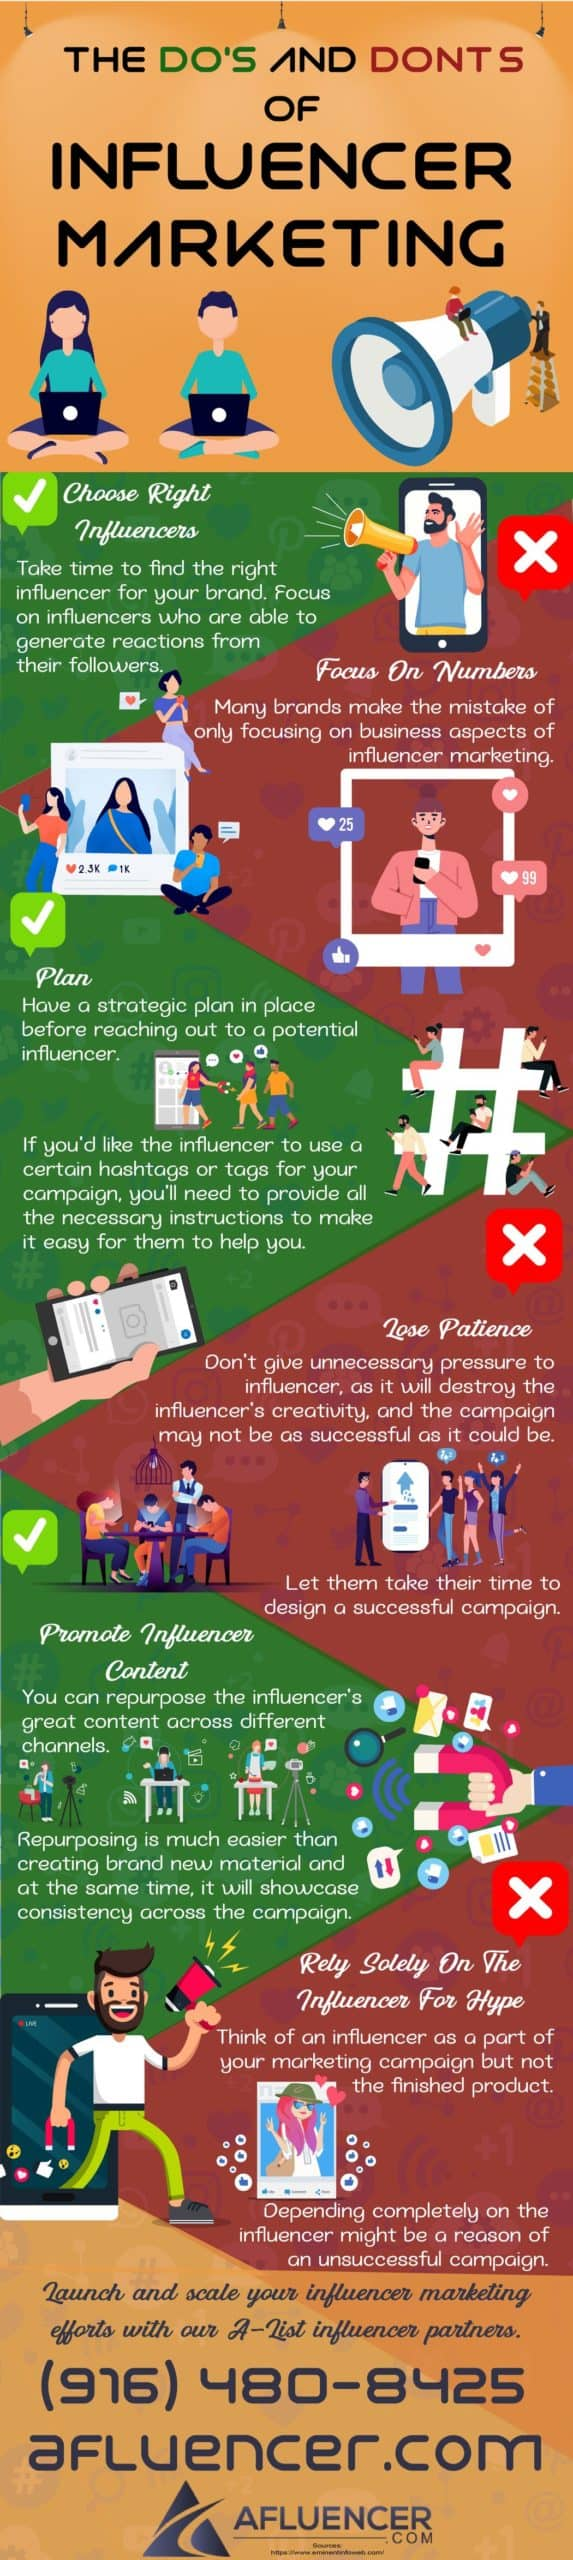 Do's and Don'ts of Influencer Marketing | Afluencer Infographics